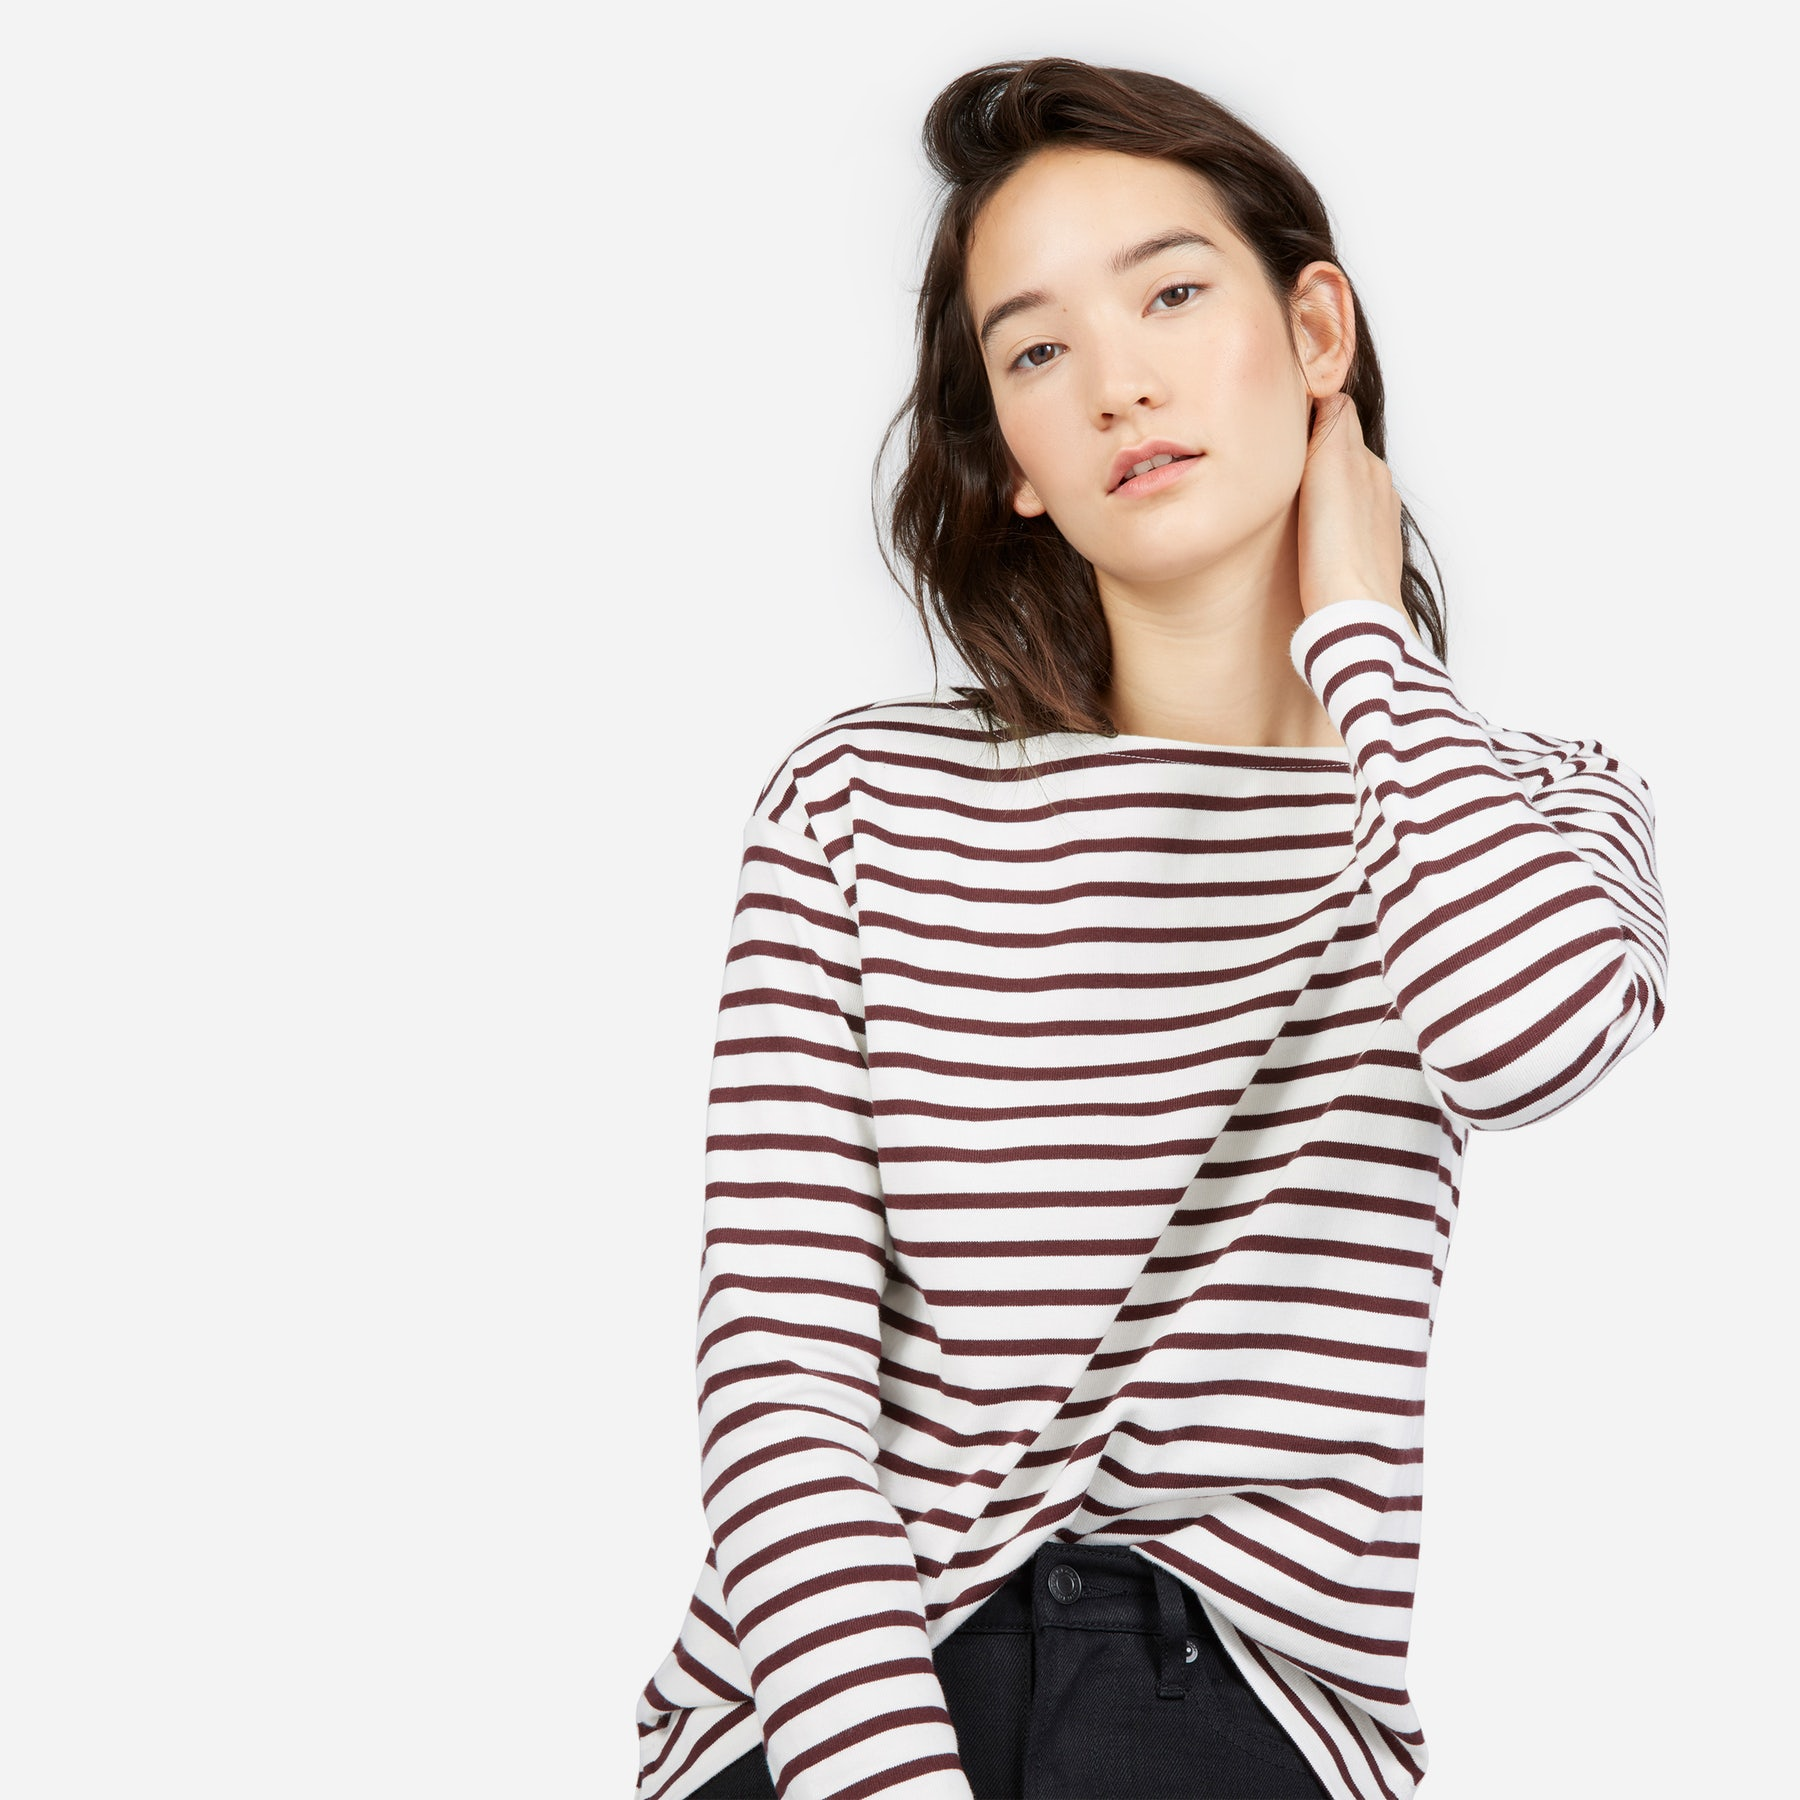 Stripped Tee, $45